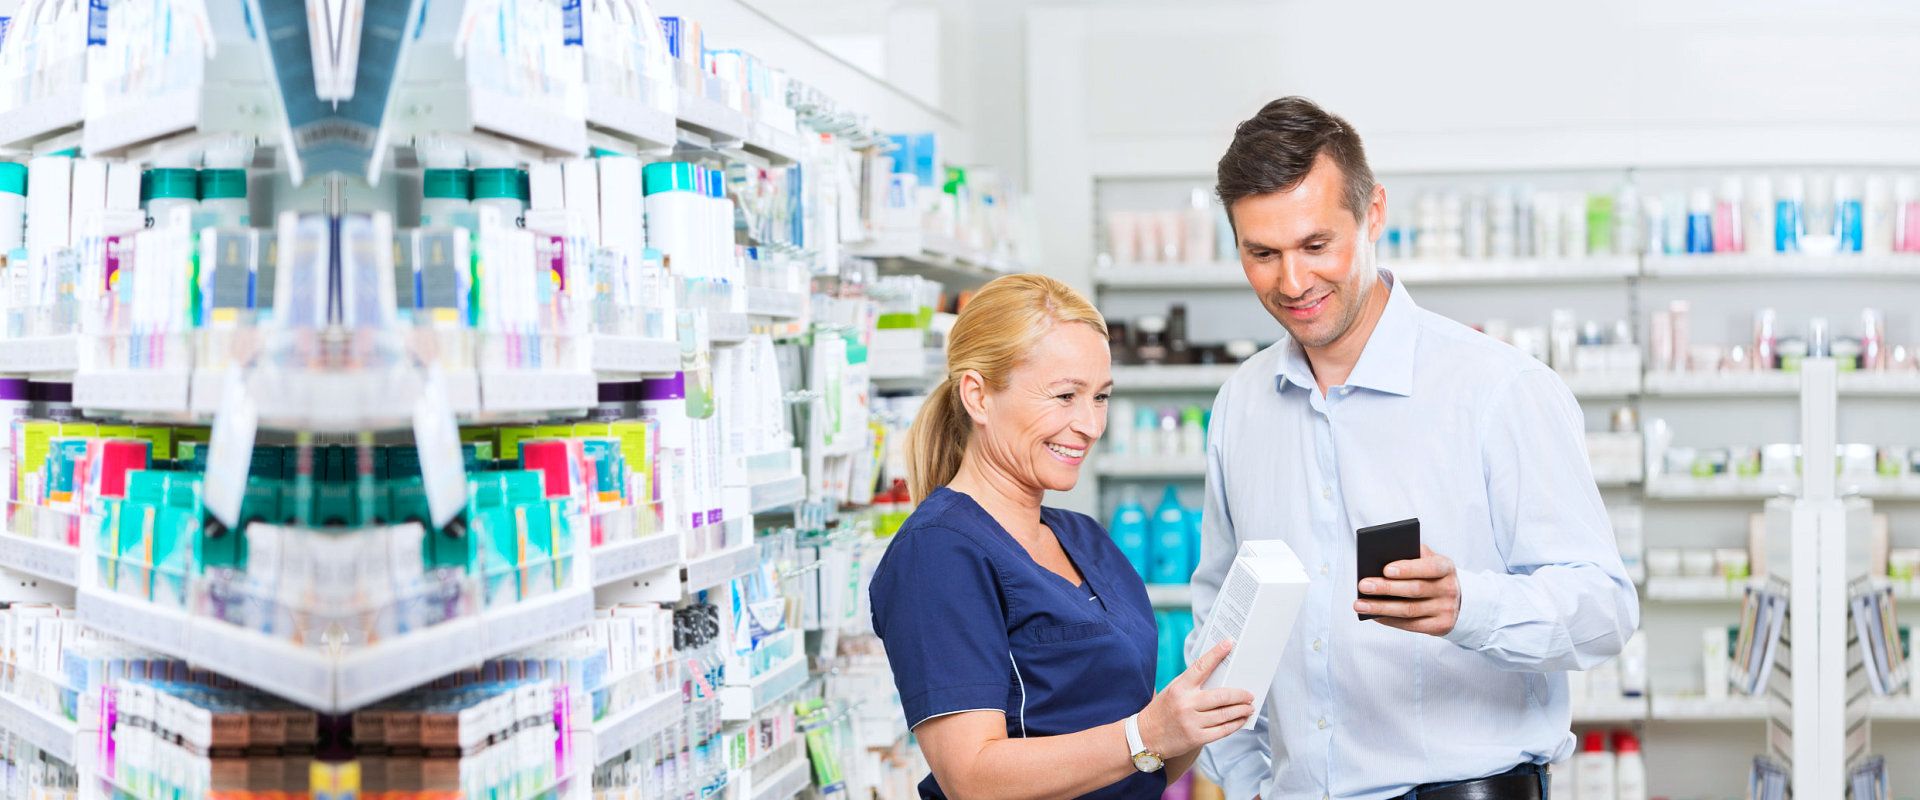 Smiling male customer using mobile phone and a pharmacist